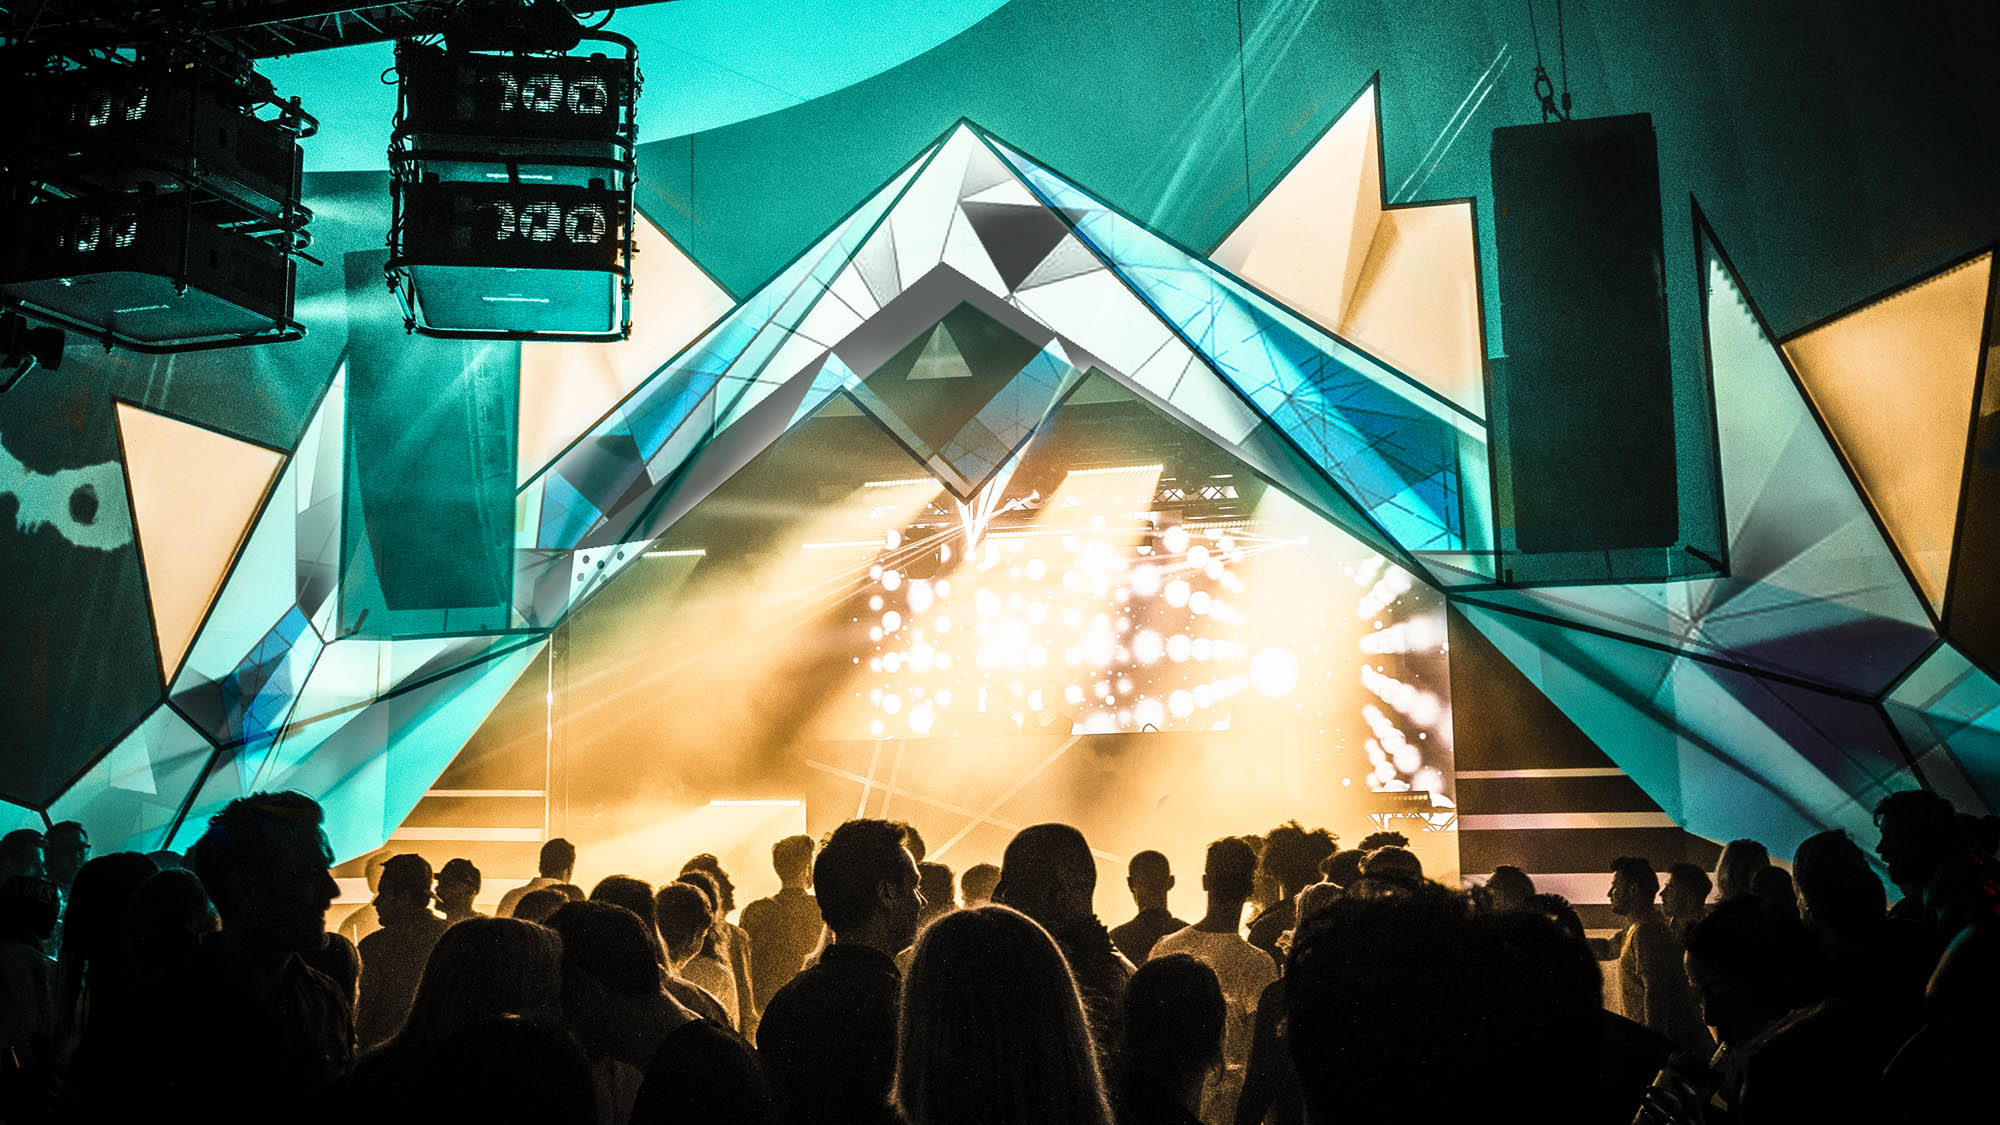 fulldome mapping show, 360, immersive art, installation, new media art, projection mapping, visuals